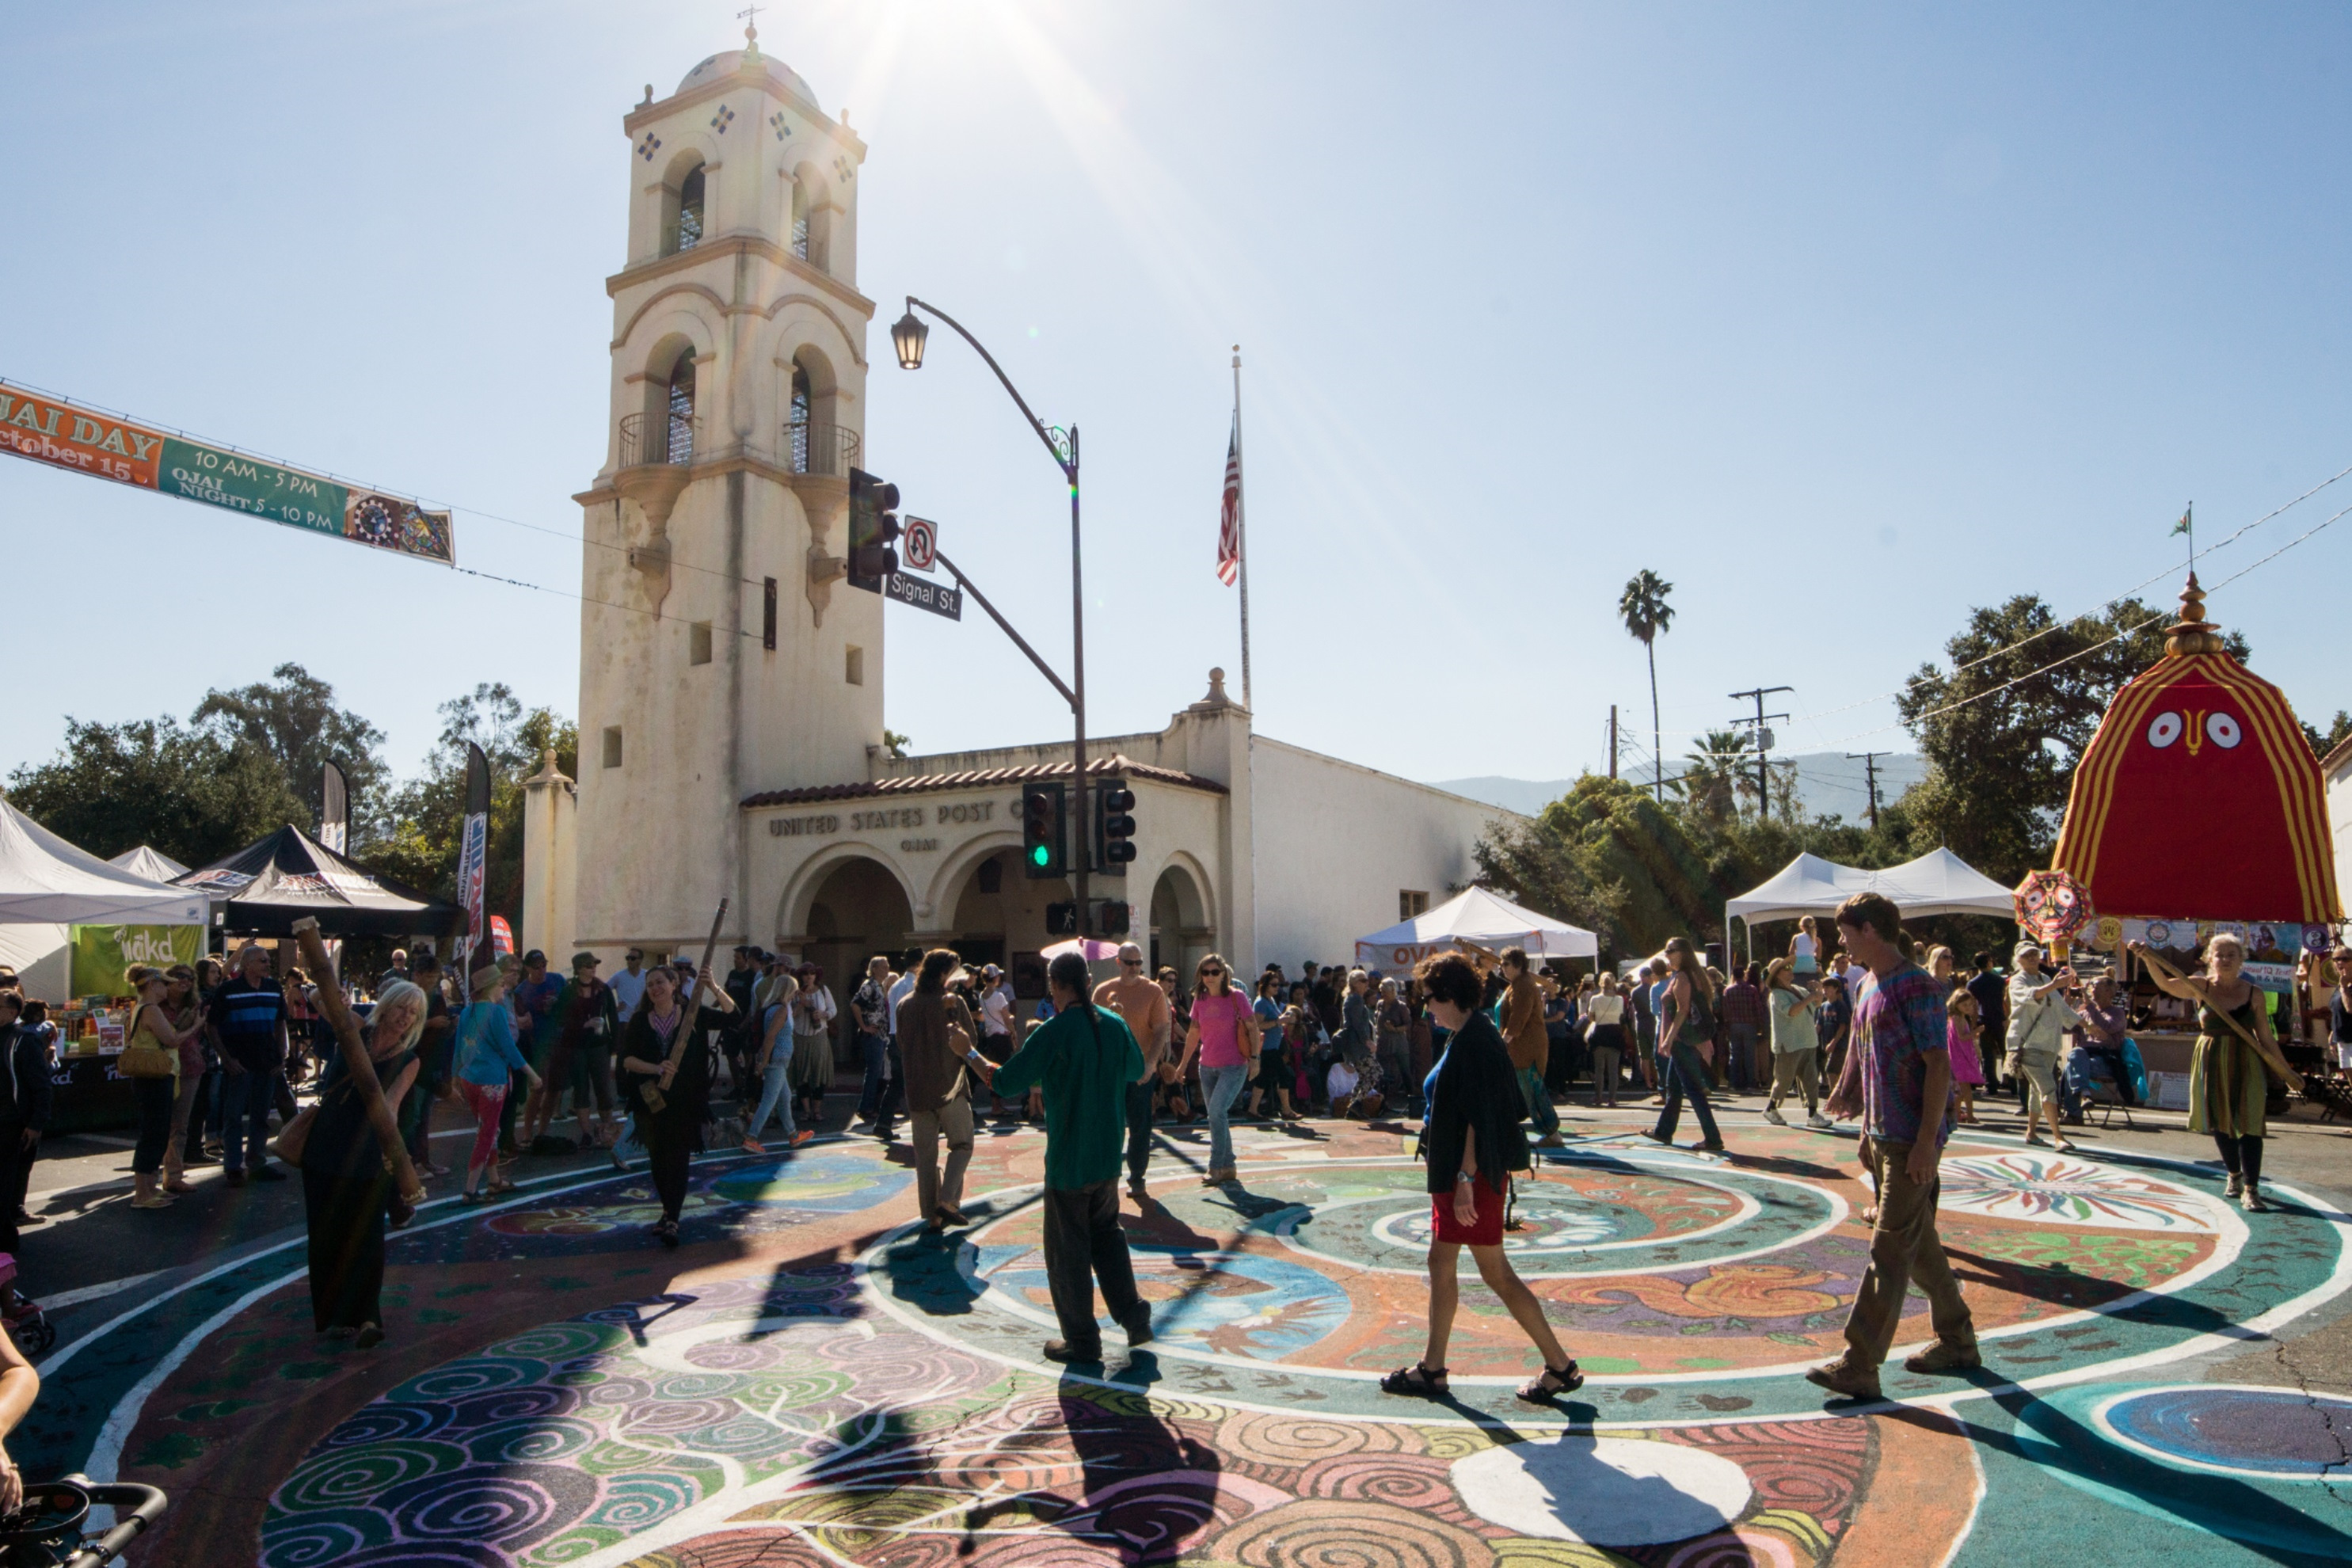 Ojai Day 2019 is no longer accetping applications